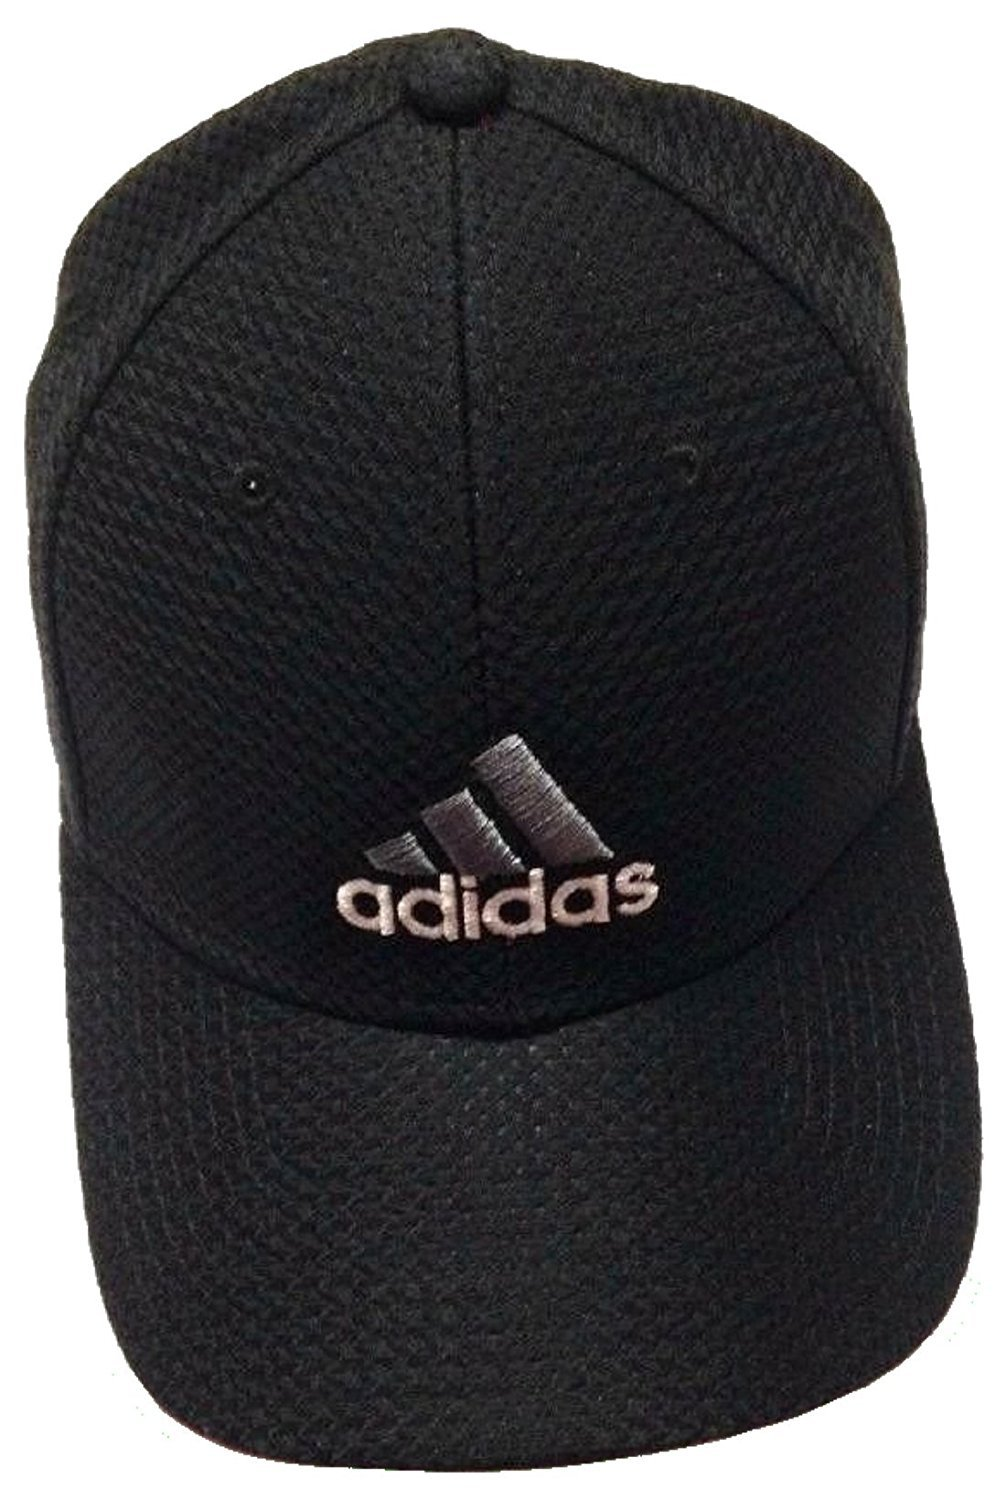 a9e5be846d9ce Polyester mesh fabric for ultimate breathability and sweat resistance.  Center front embroidered adidas badge of Sport logo